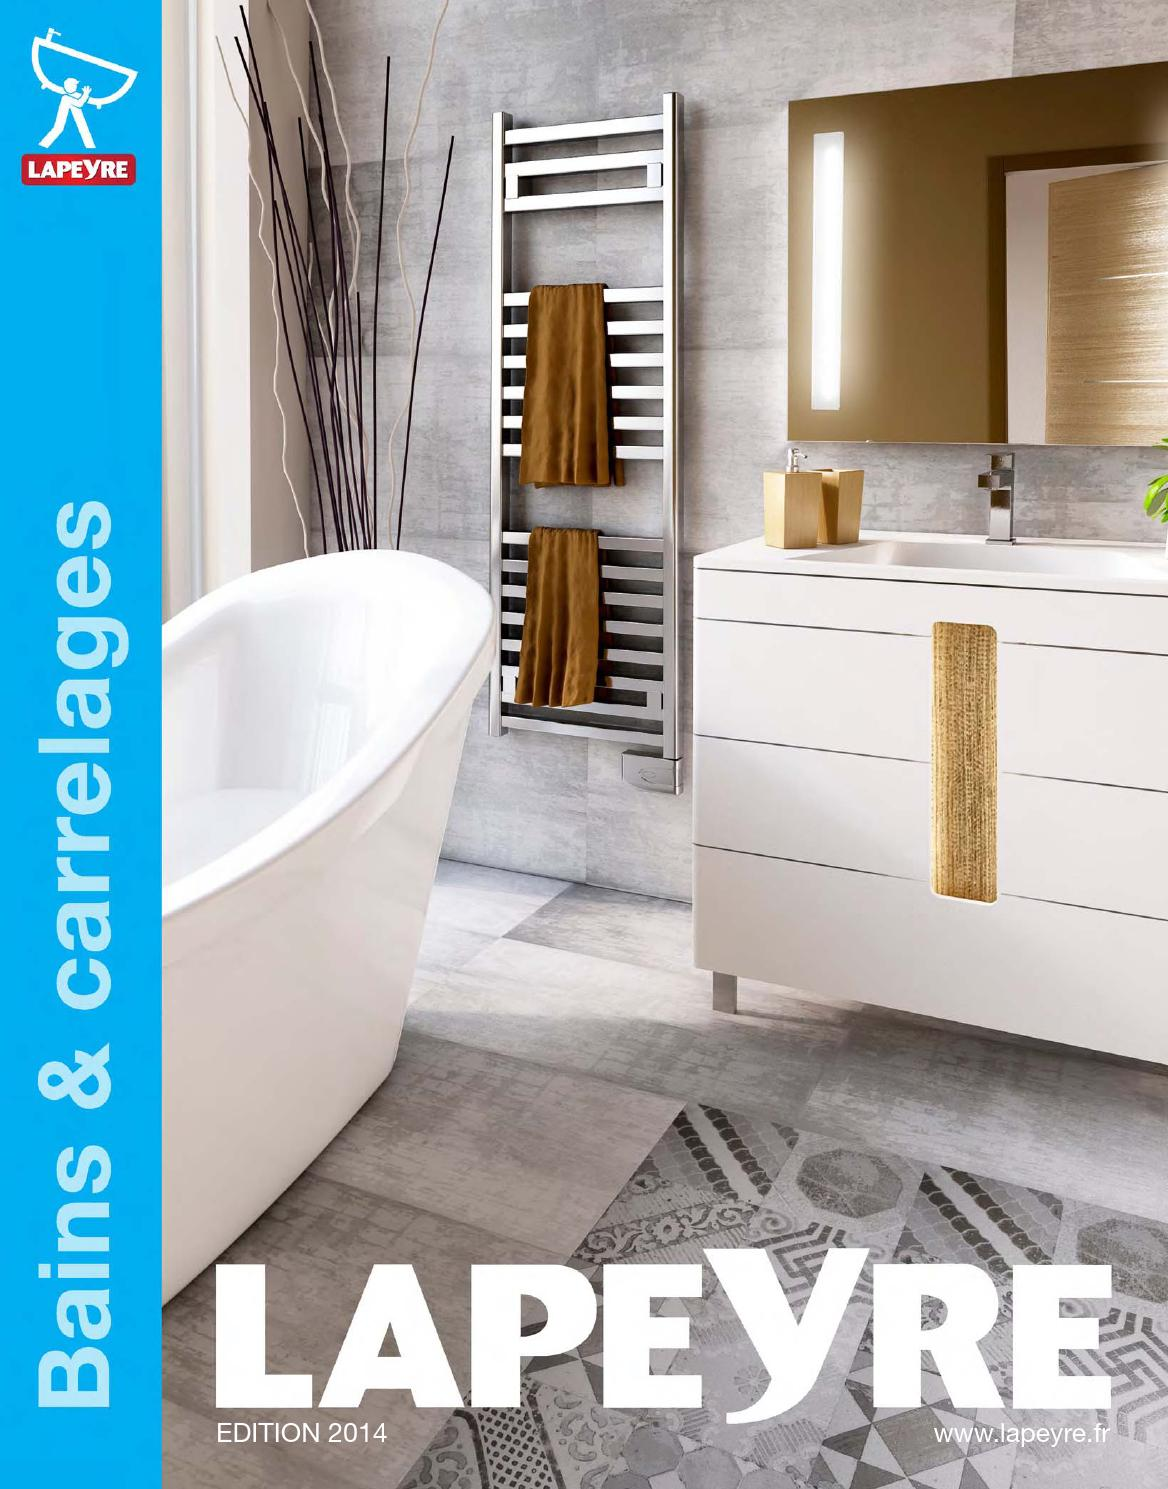 Catalogue Lapeyre - Bains U0026 Carrelages 2014 By Joe Monroe - Issuu